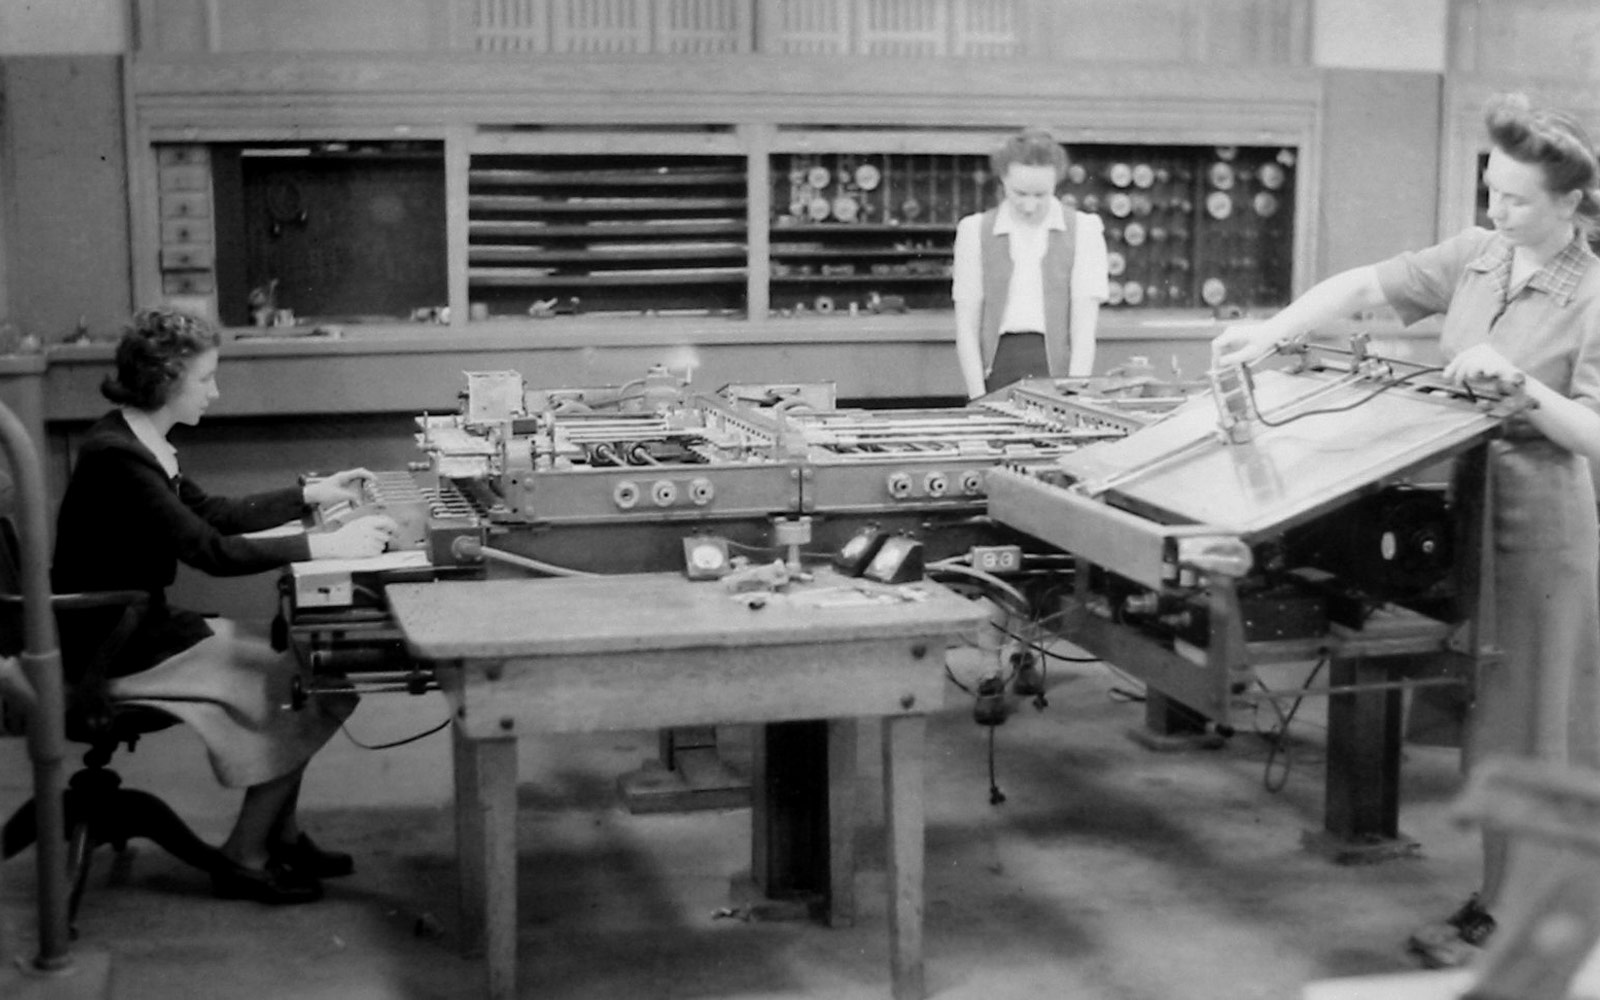 Three members of the team led that worked on the ENIAC under Adele Katz (circa 1942-1945).